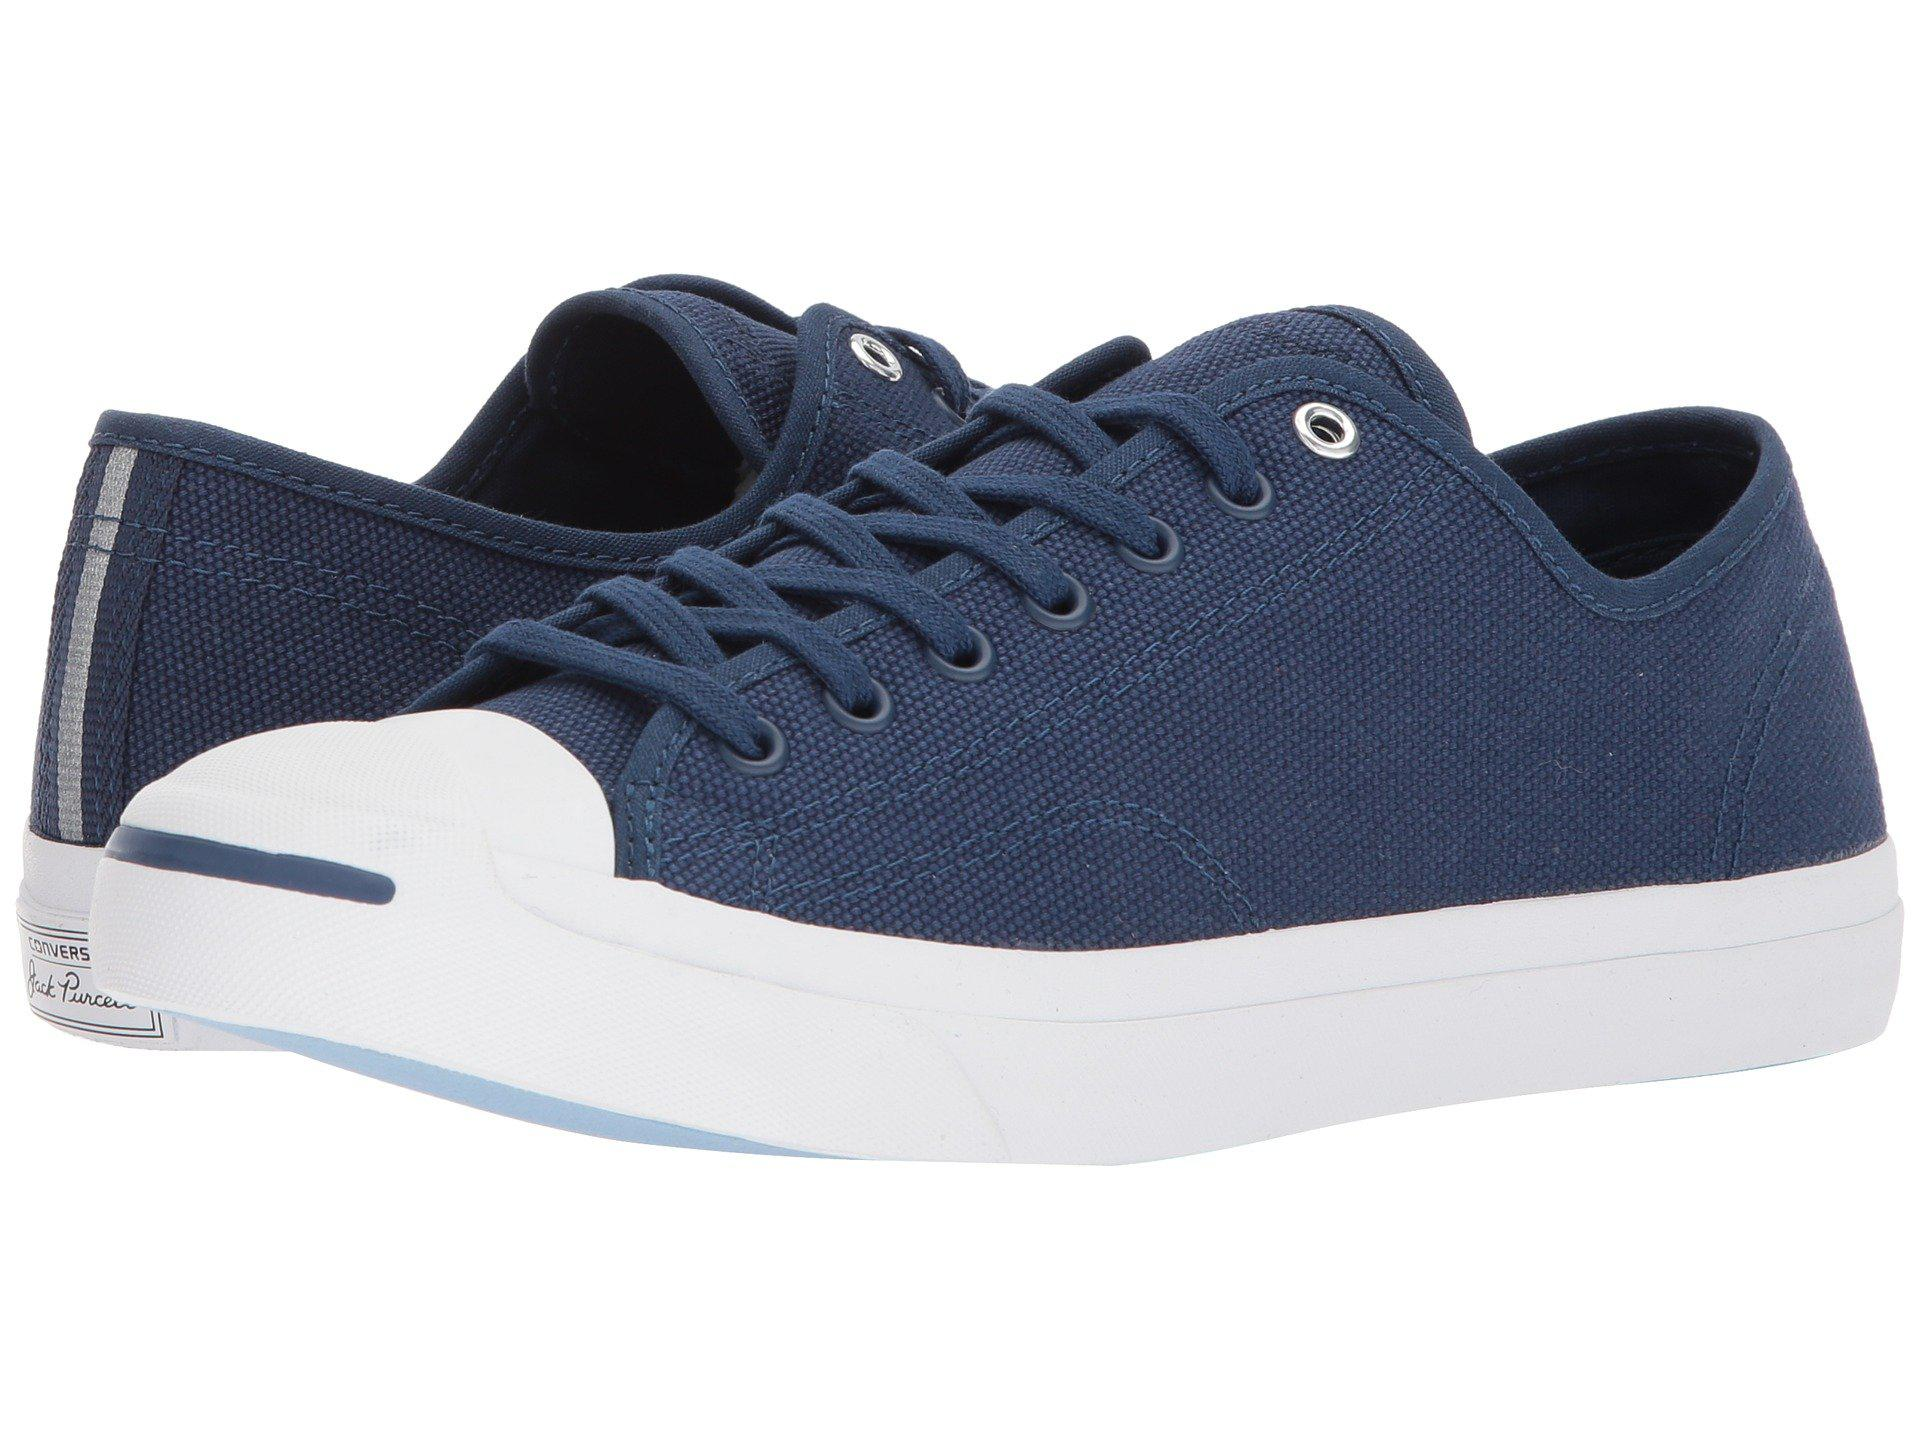 Lyst - Converse Jack Purcell® Jack Heavy Canvas Ox in Blue for Men cad7c4008